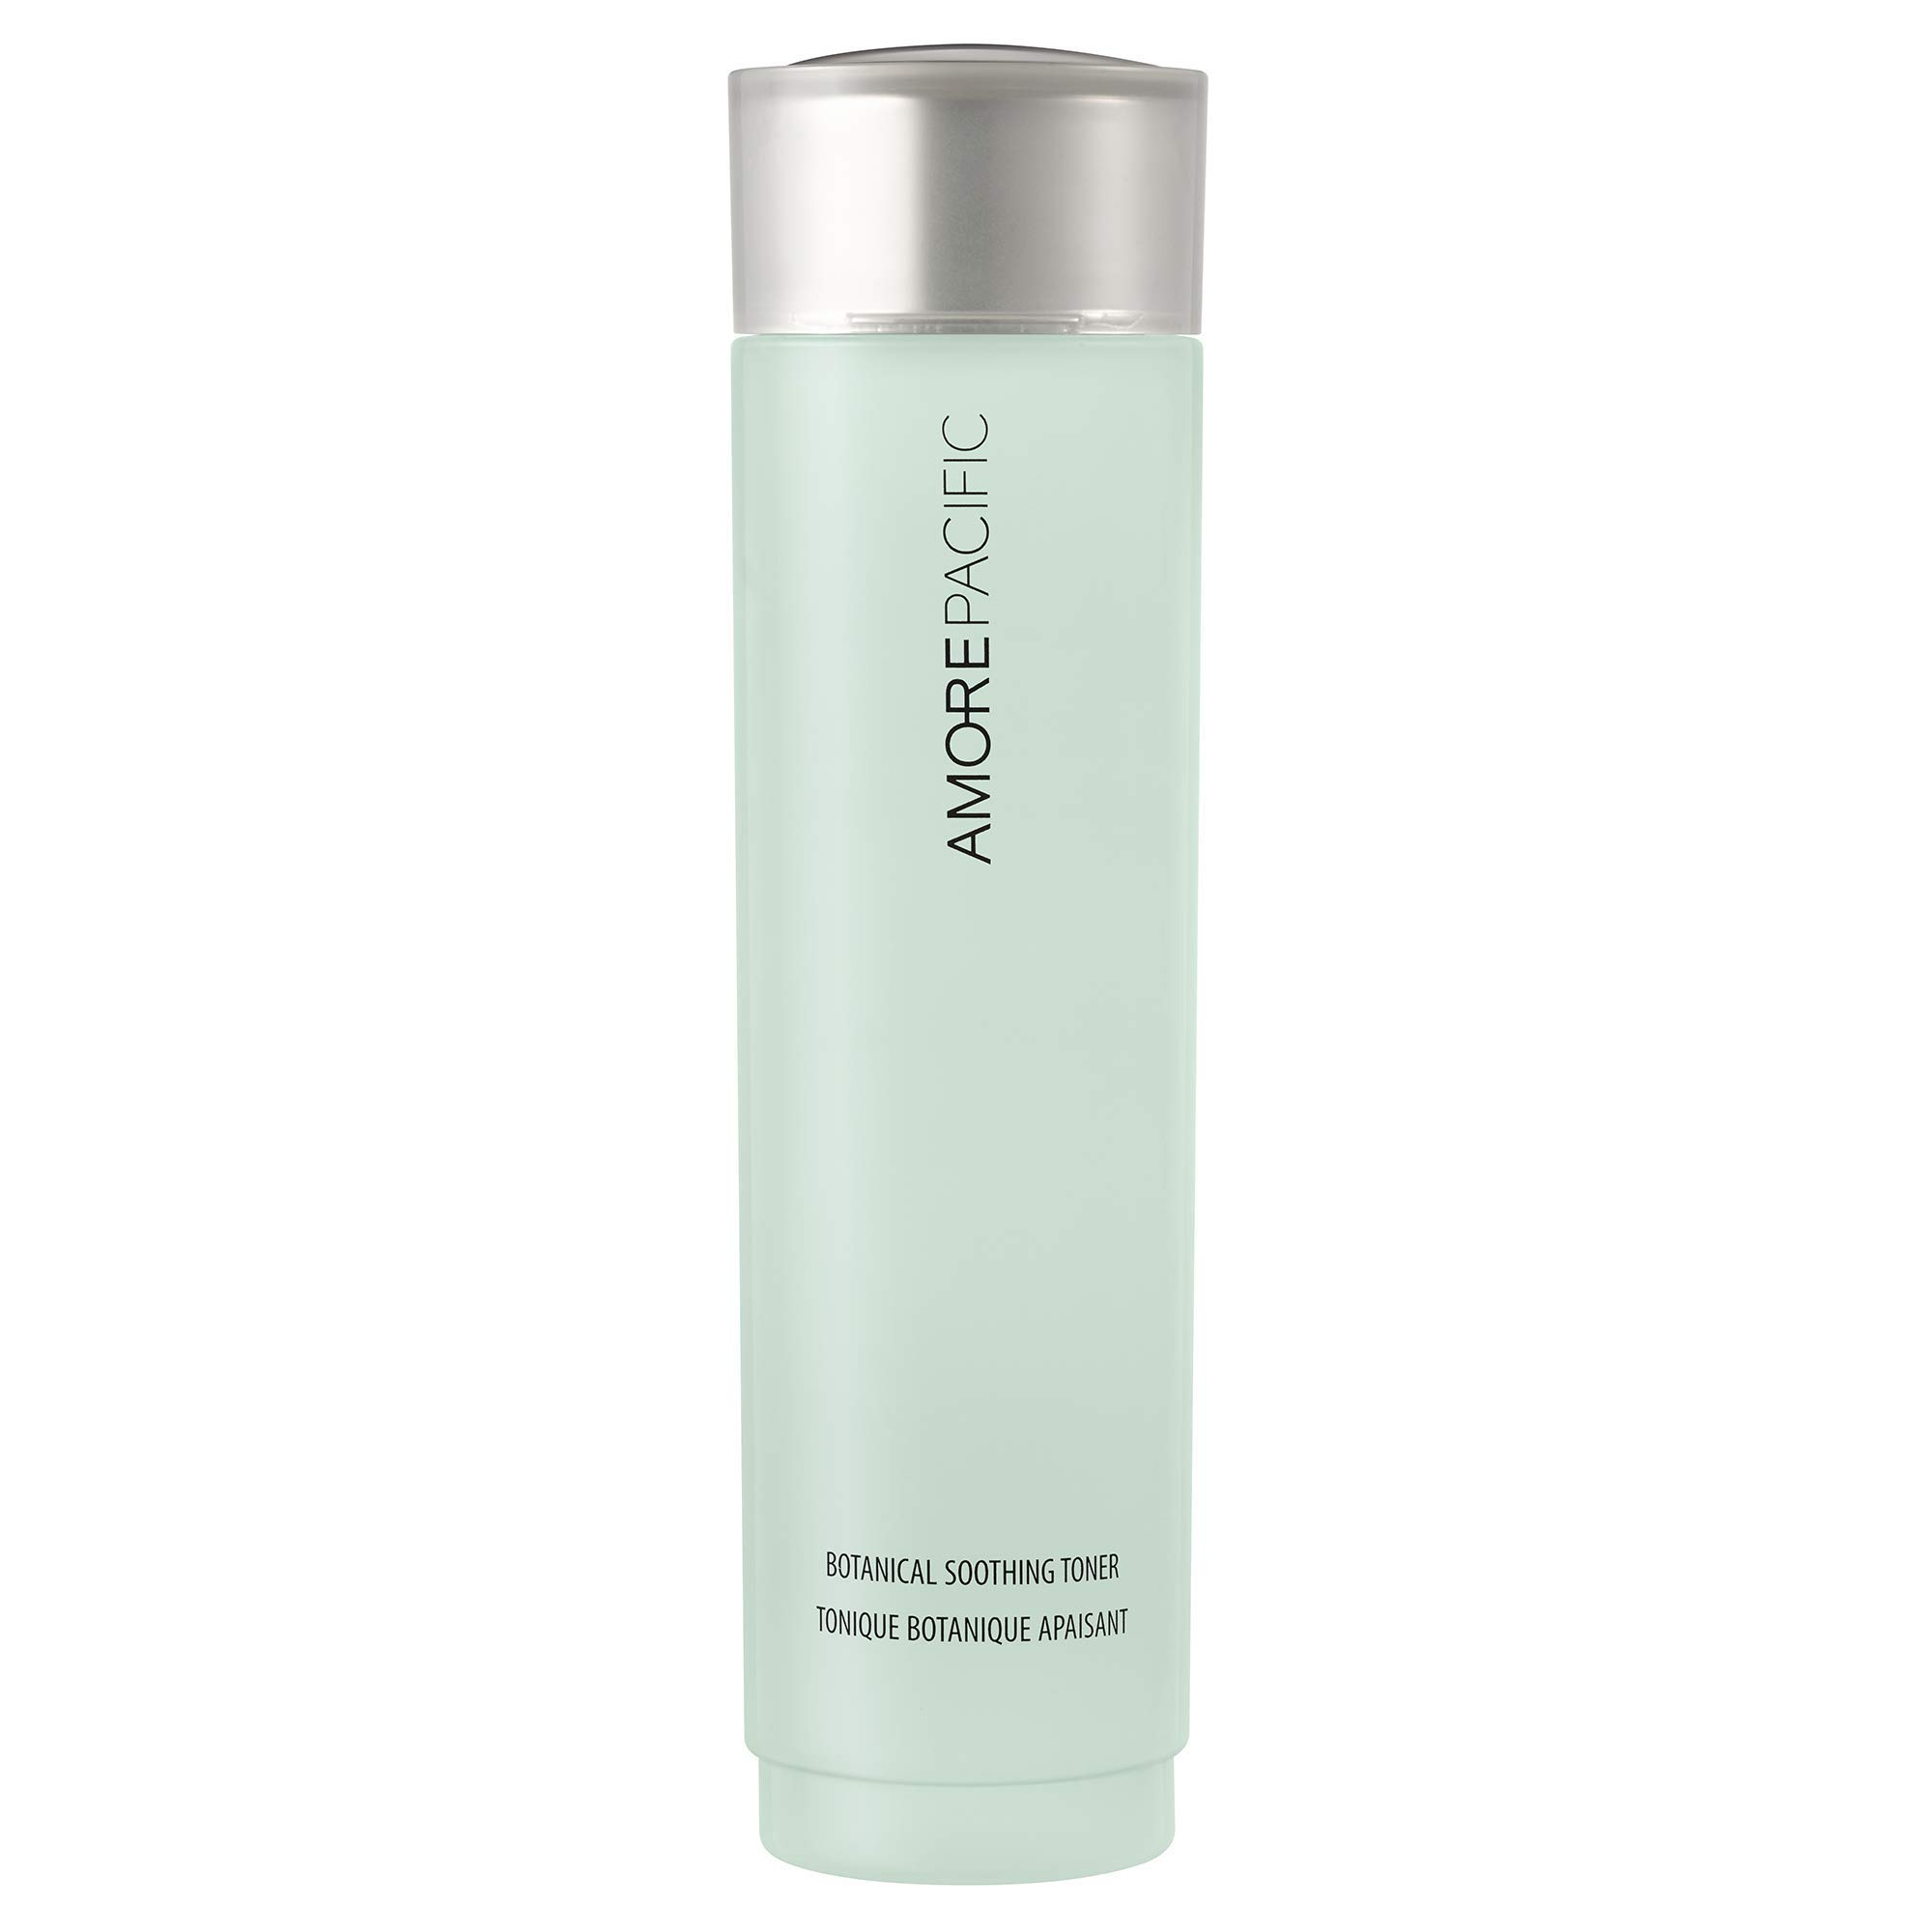 AMOREPACIFIC Botanical Soothing Toner Hydrating Facial Face Treatment Alcohol Free